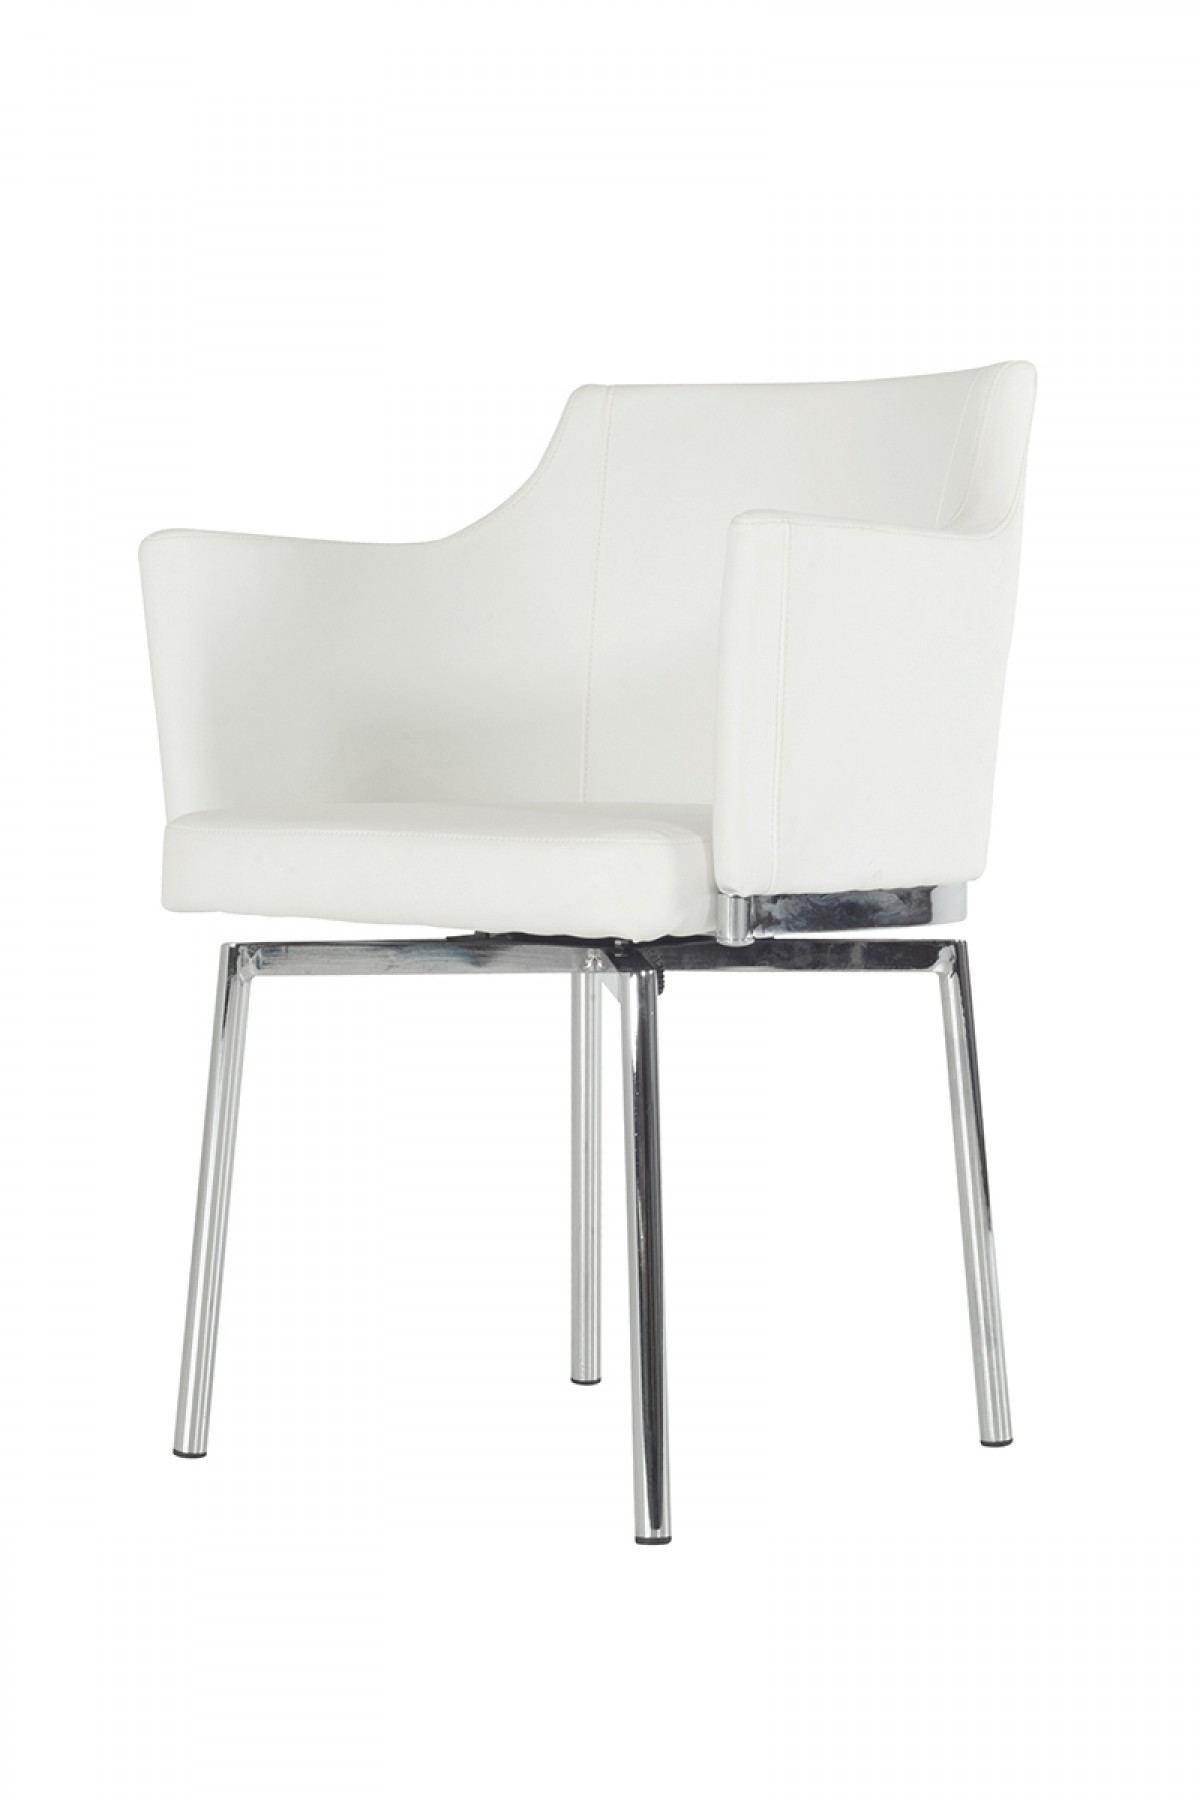 Check out the brand new Cynthia White Swivel Dining Chair at AdvancedInteriorDesigns.com